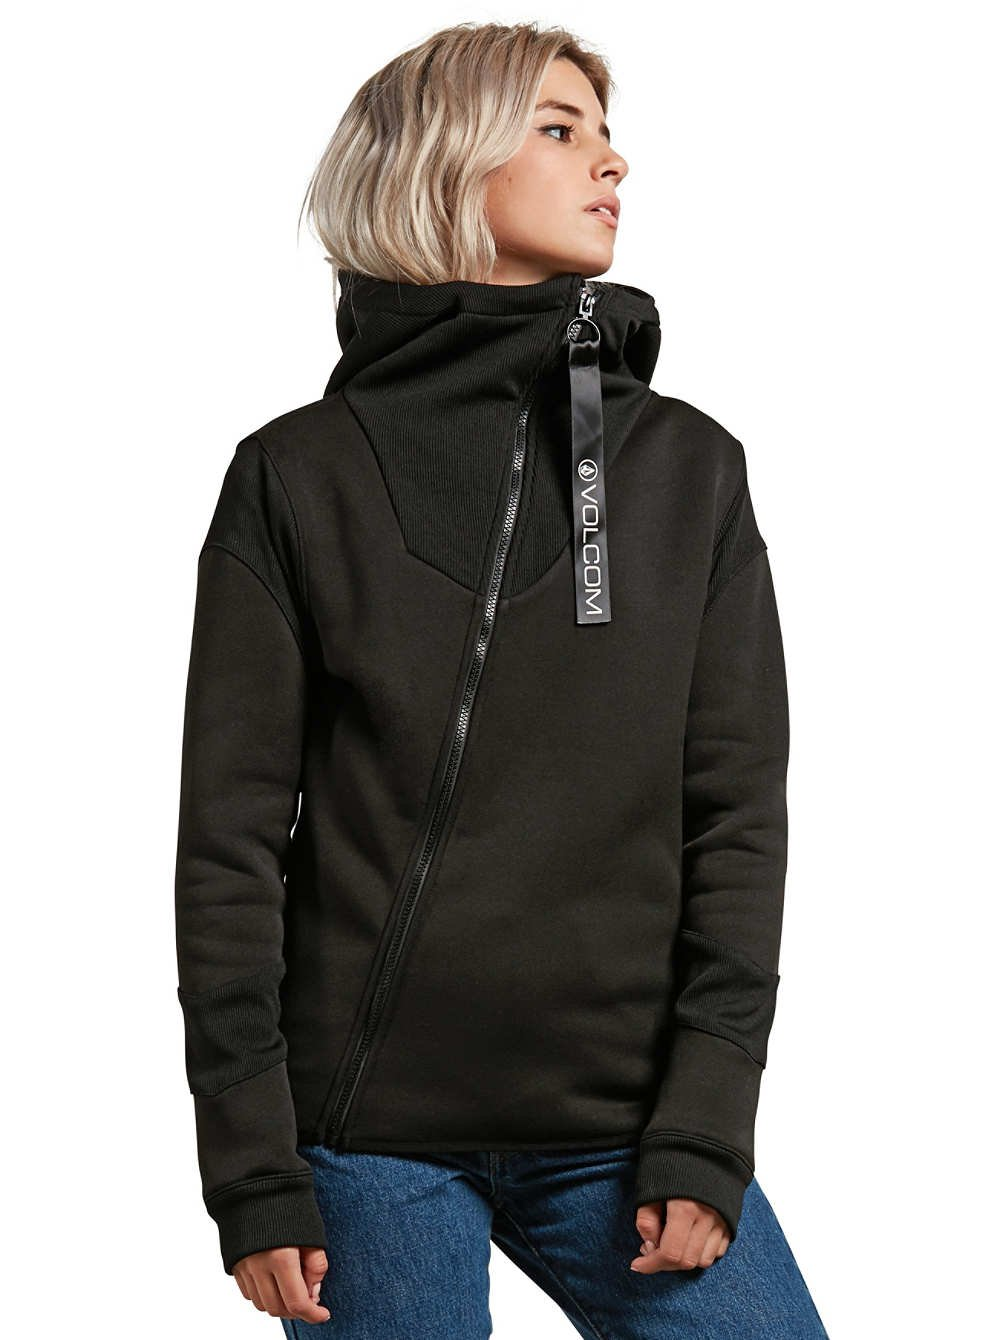 Volcom Walk On by Tech Übergangsjacke, Mujer, B3131855, Negro, Small: Amazon.es: Deportes y aire libre